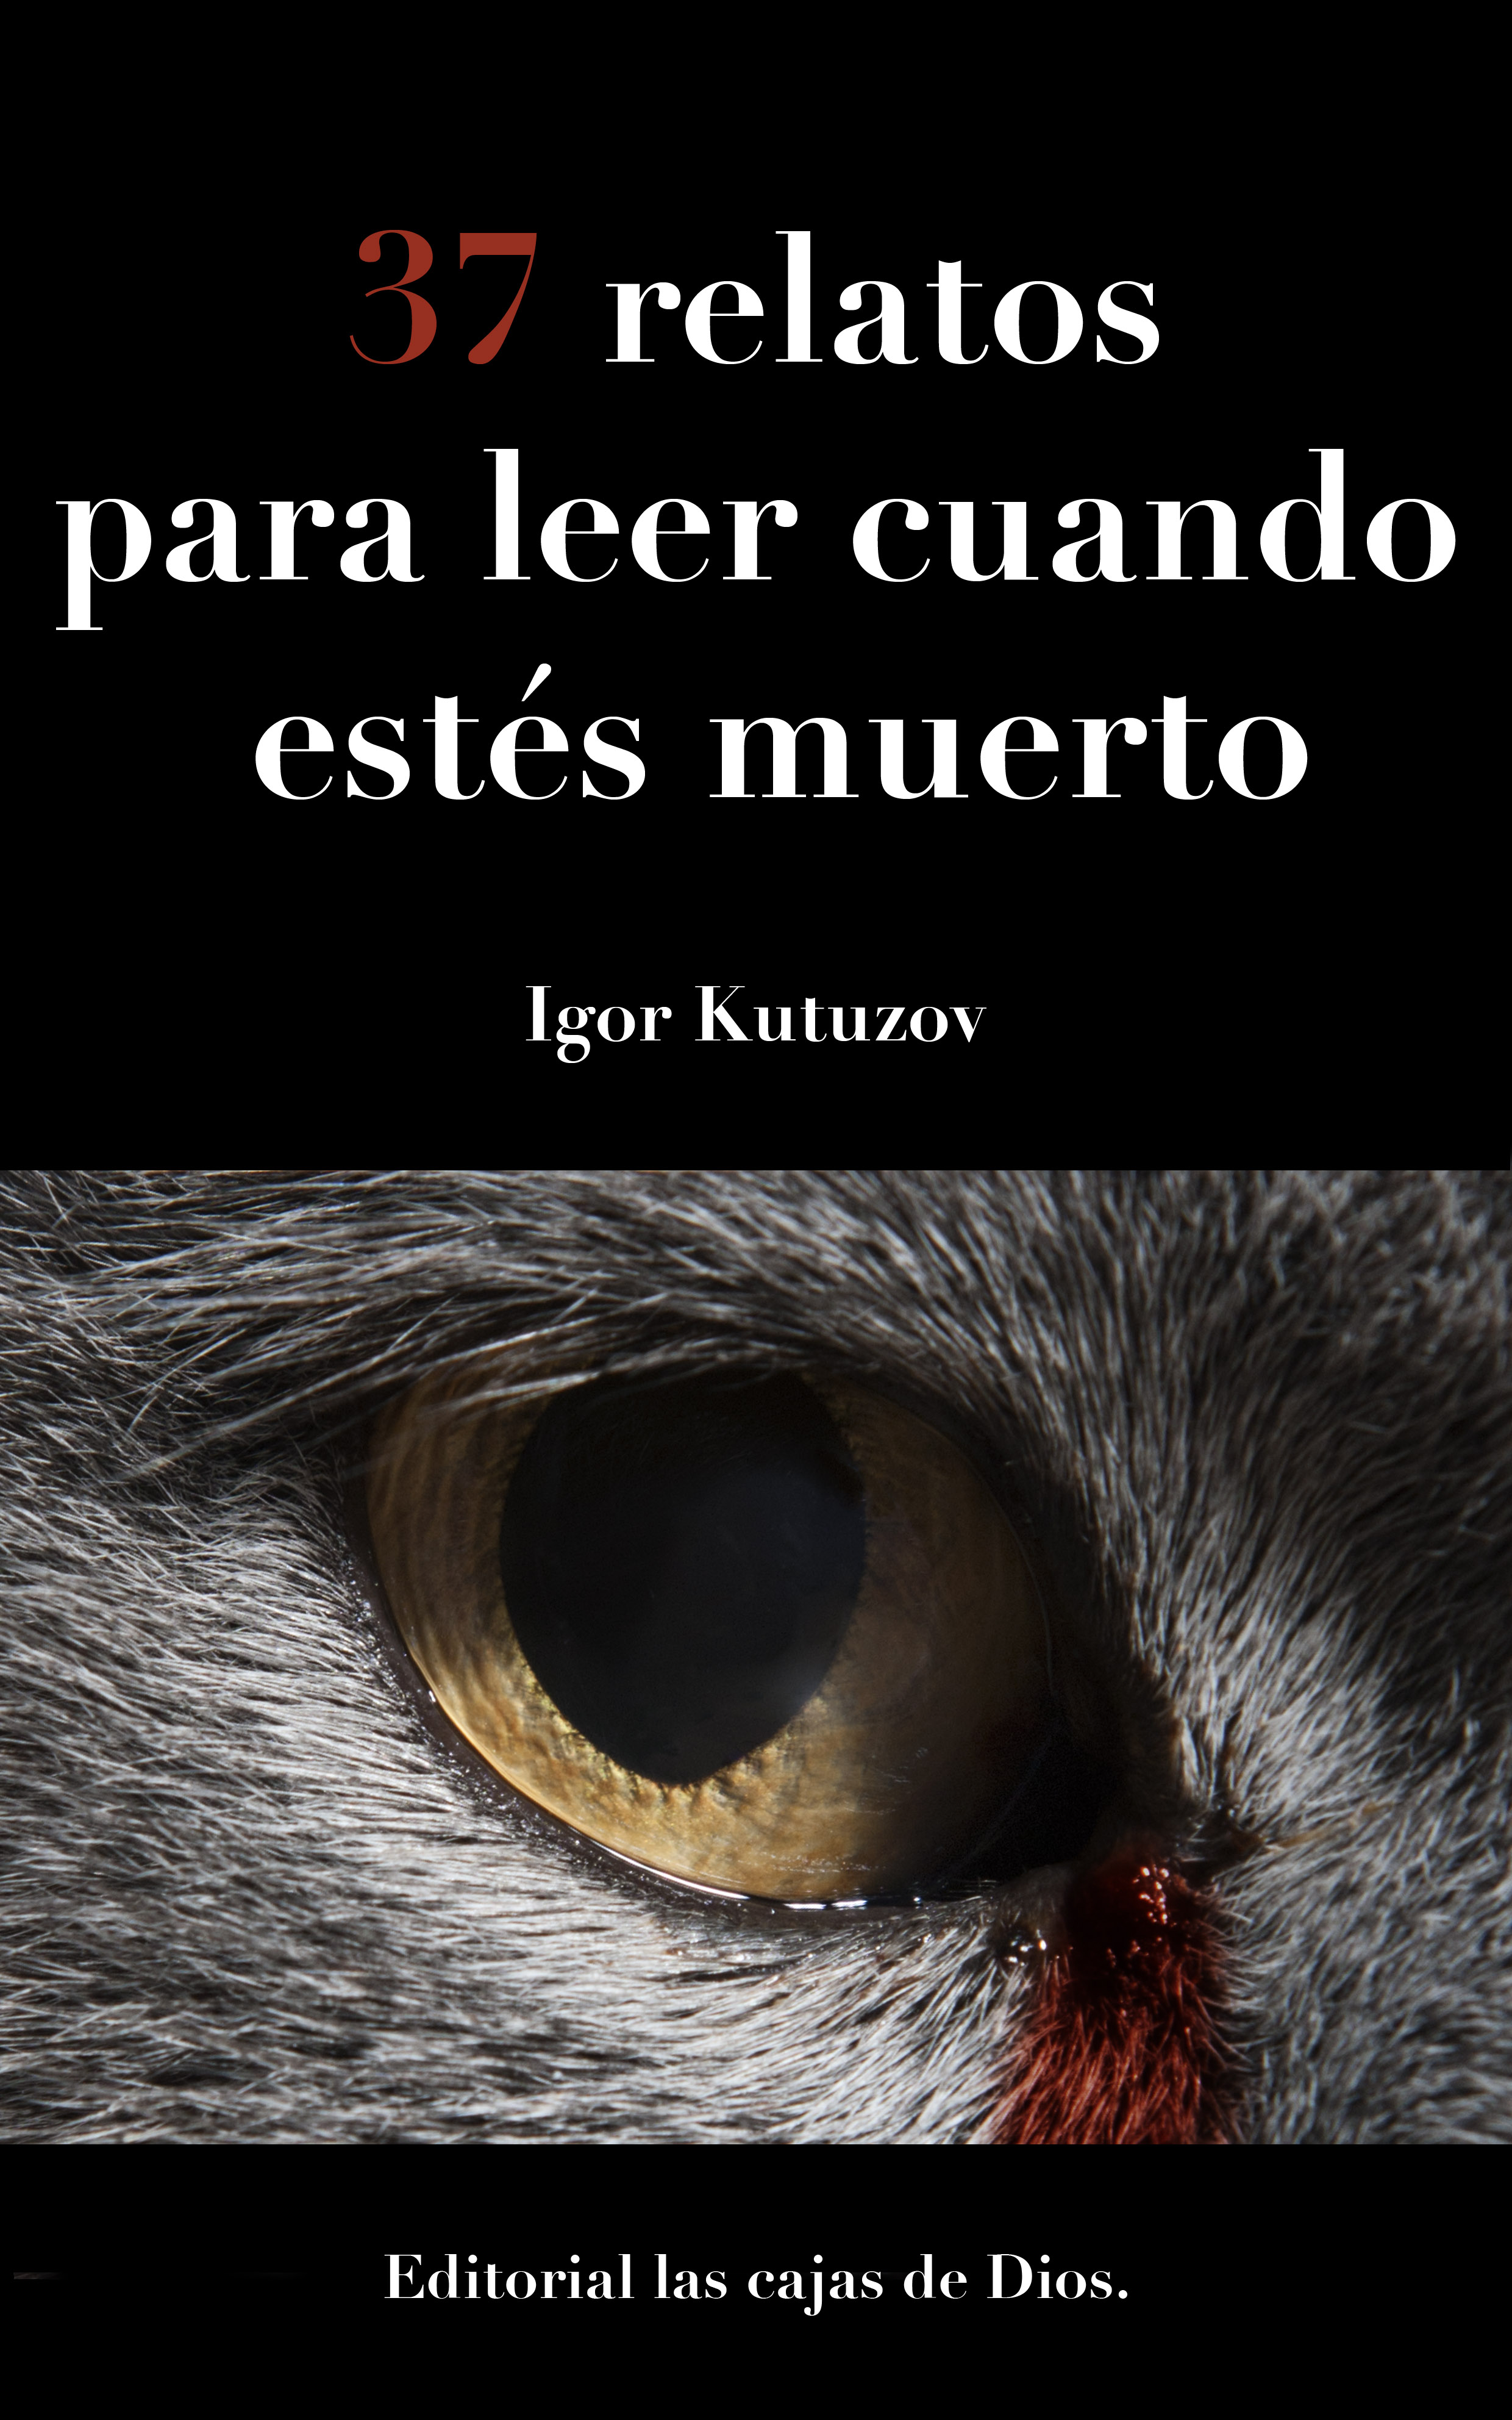 37 Relatos epub, pdf, mobi.